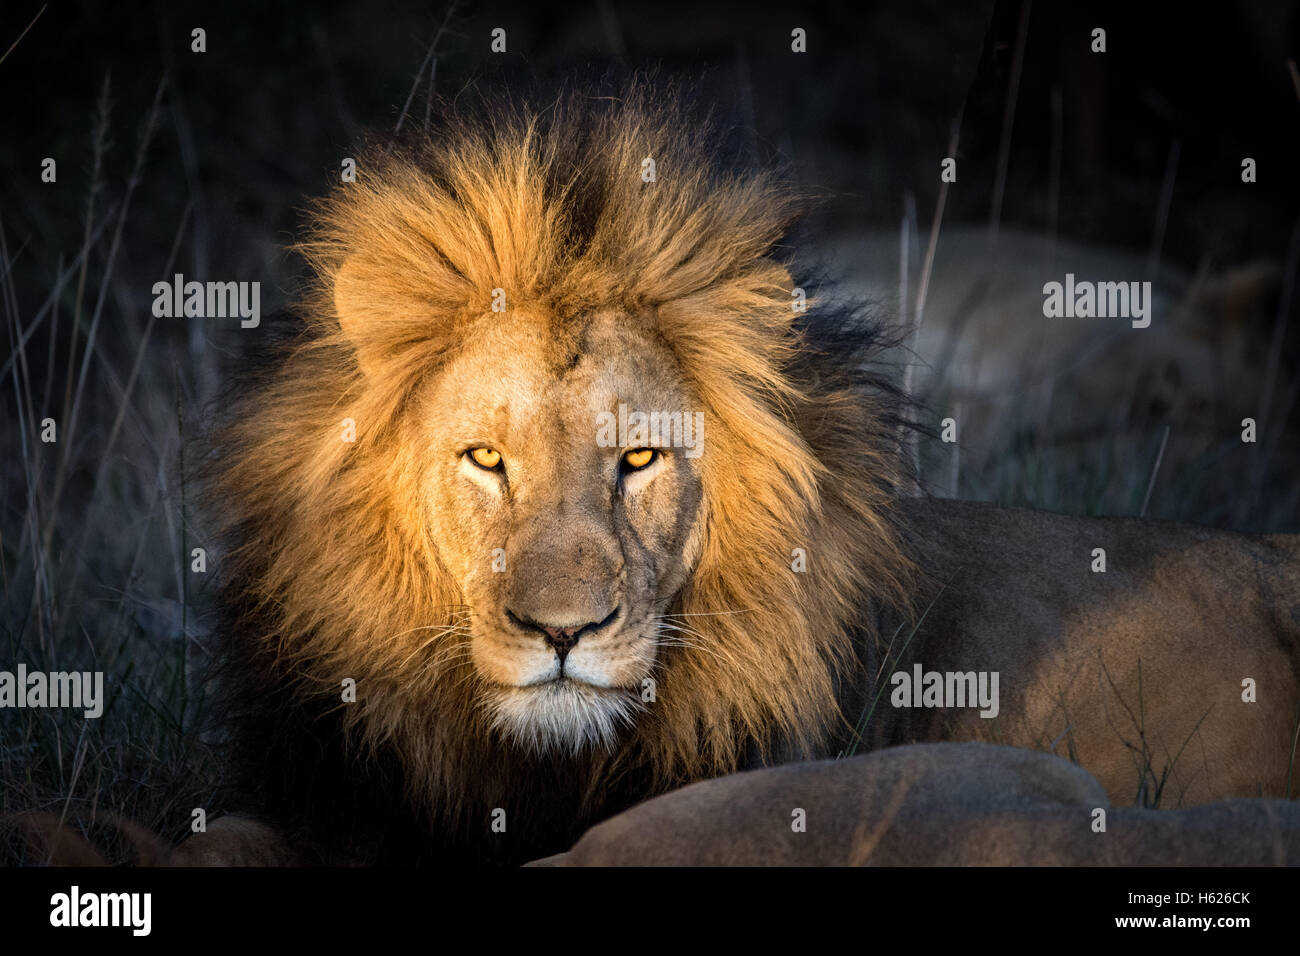 Beautiful Beast. Lion looks straight at the camera. - Stock Image